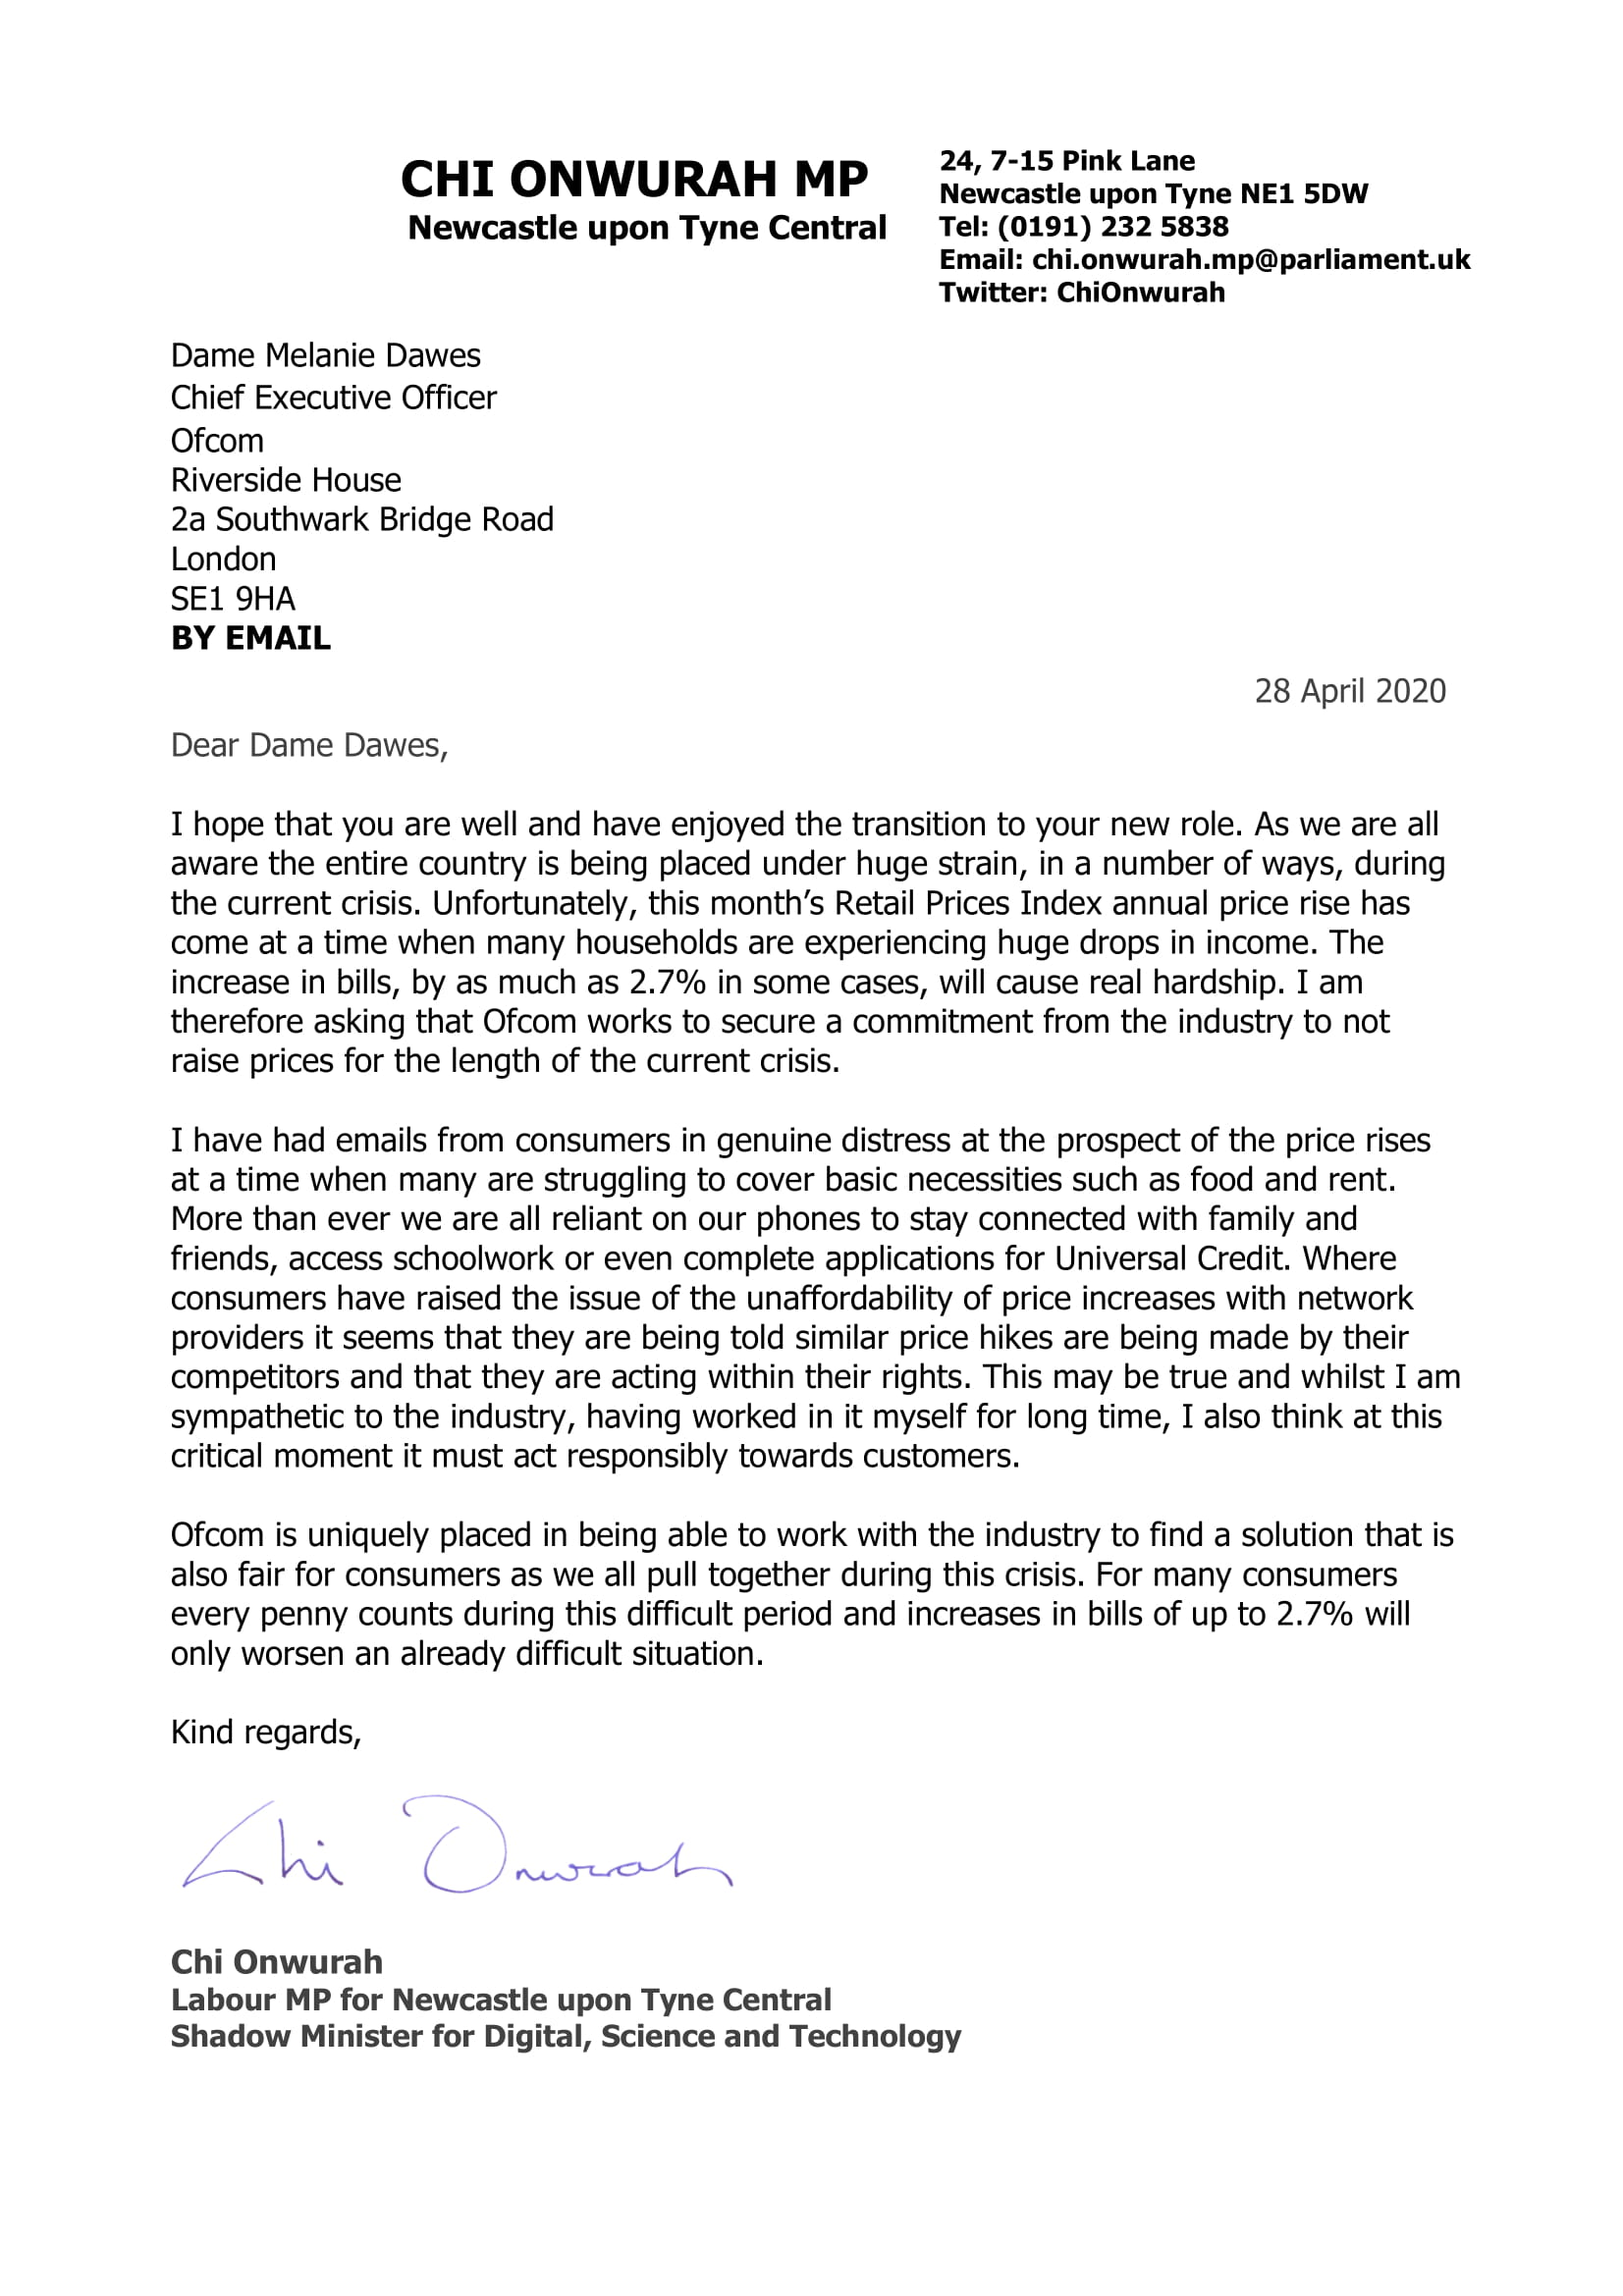 Chi writes to Ofcom CEO to stop price increases during covid-19